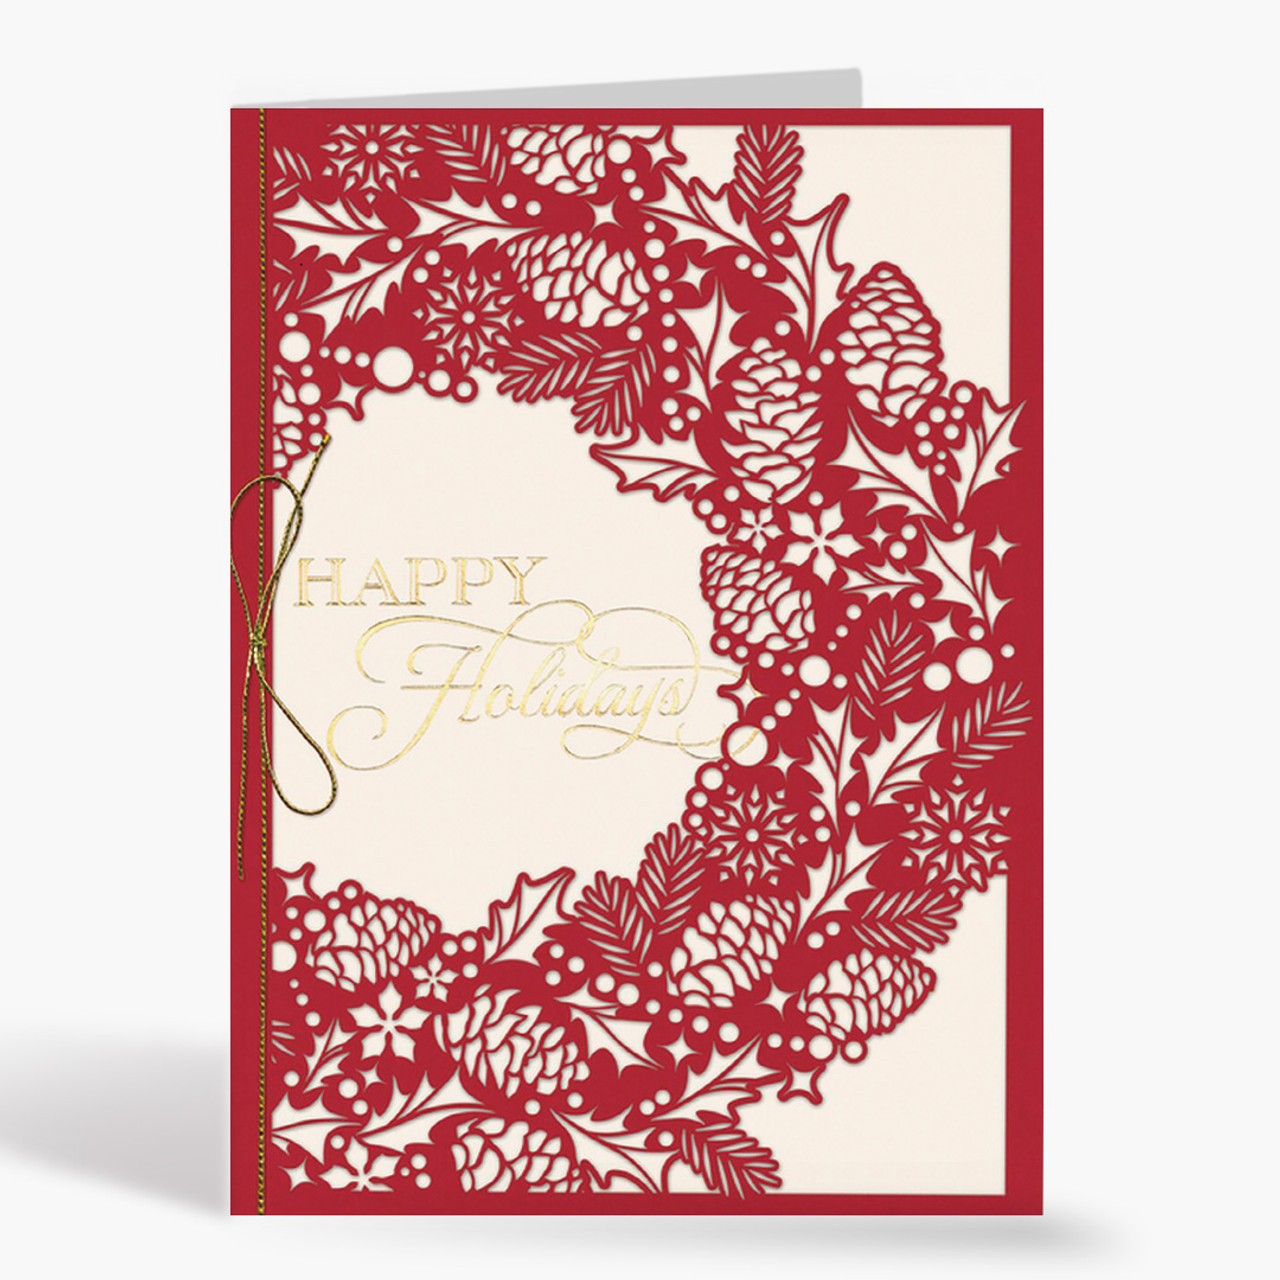 Intricate Wreath Christmas Card